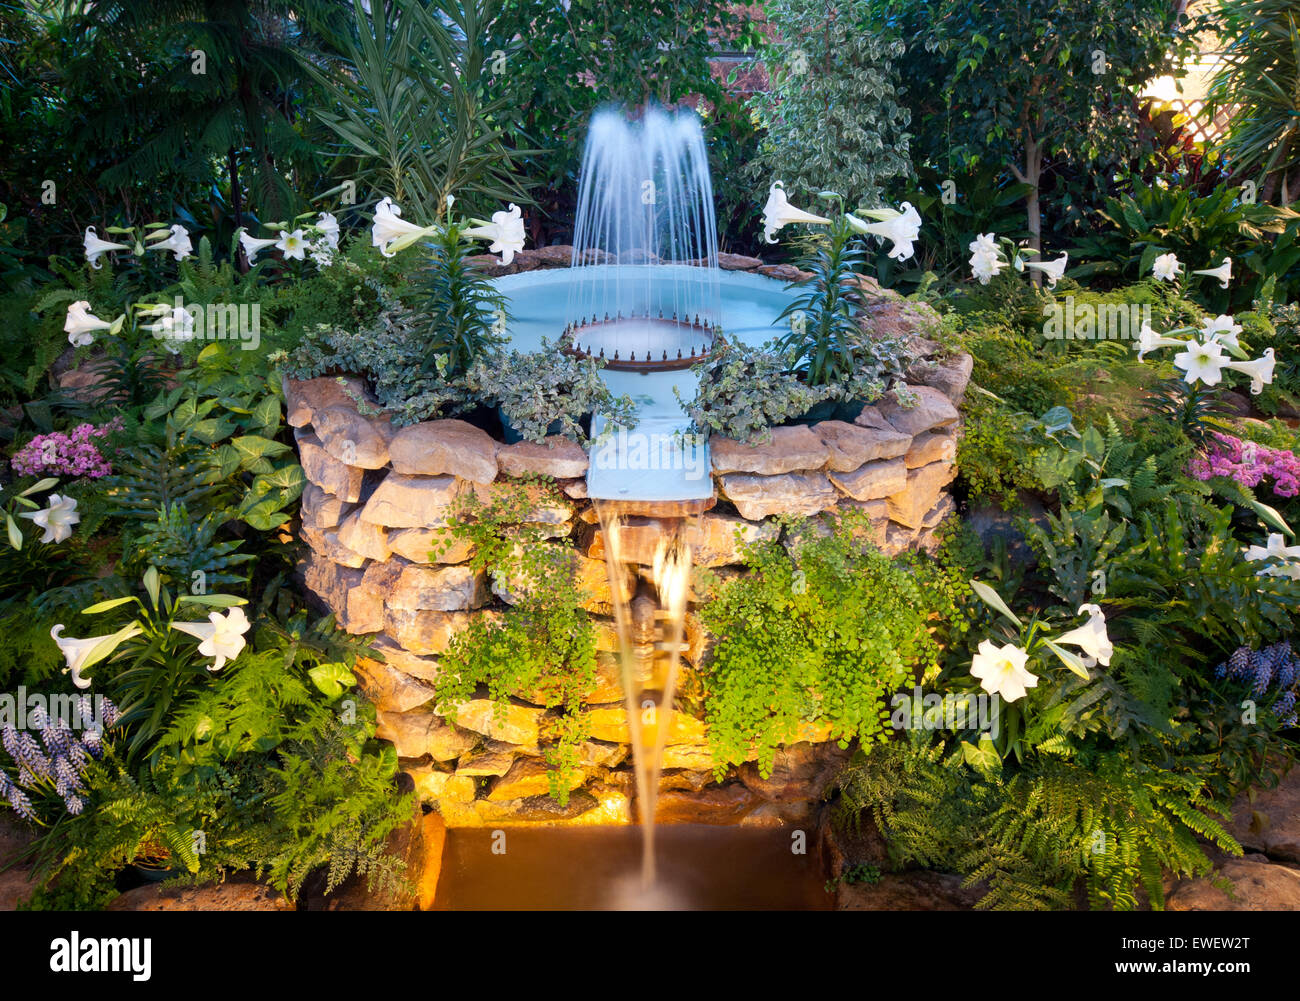 A view of the fountain, flowers and greenery at the Saskatoon Civic Conservatory in Saskatoon, Saskatchewan, Canada. - Stock Image